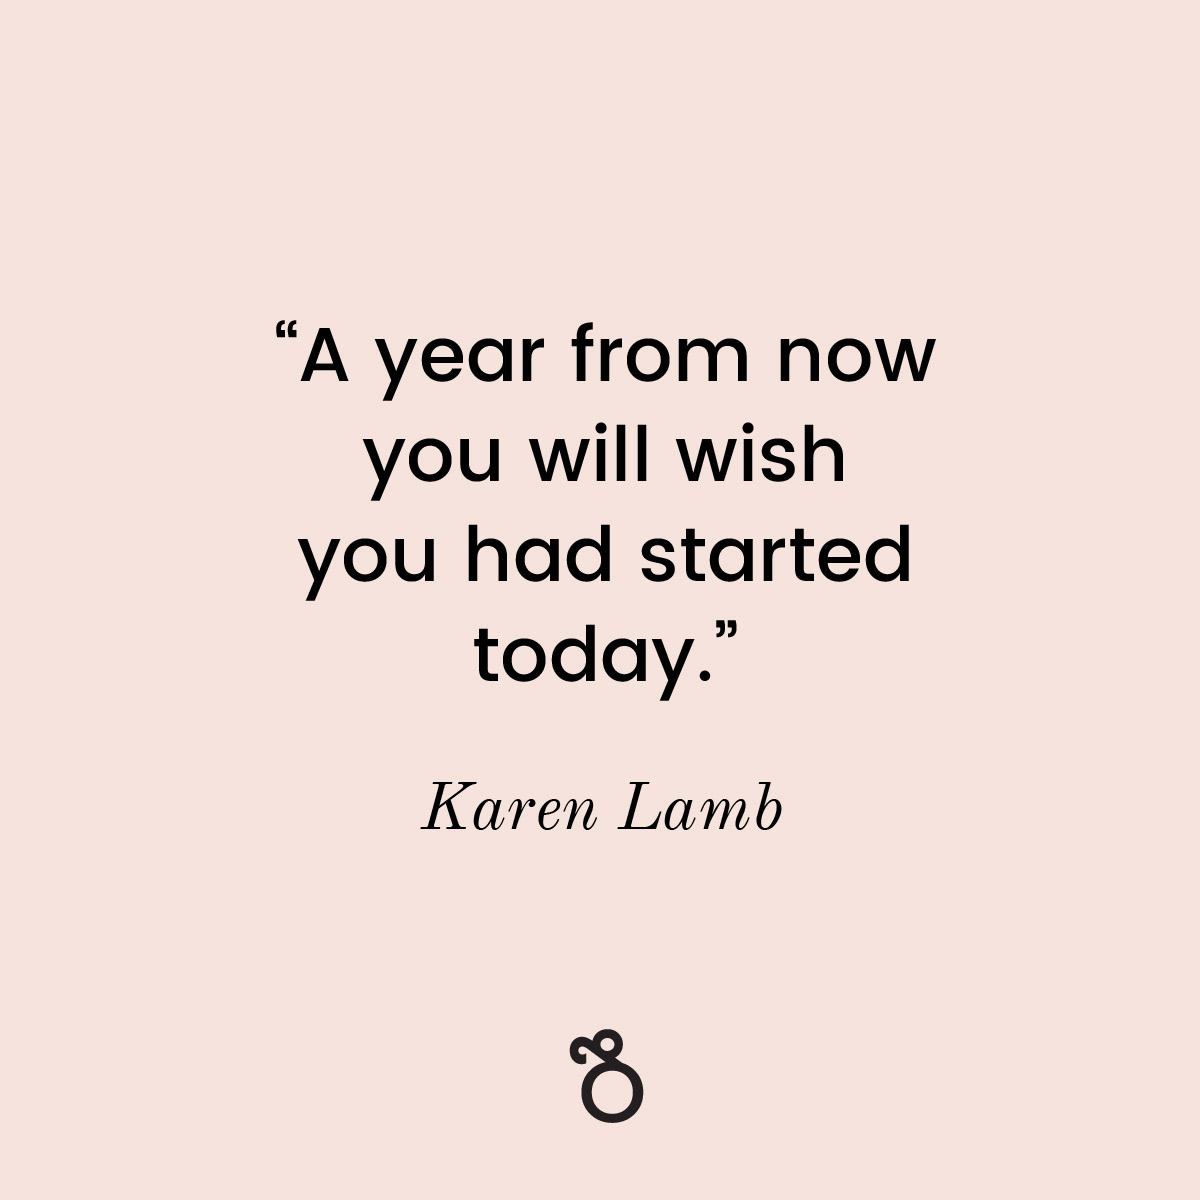 """A year from now, you will wish you had started today."" — Karen Lamb . . . . . #creativebusiness #smallbusinesses #personalbranding #socialmarketing #sayyestosuccess #femalepreneur #ladypreneur #solopreneurs #buildyourbusiness #hersuccess #bossbabetribe #dontquityourdaydream #herpic.twitter.com/bXQFBoPEgU"